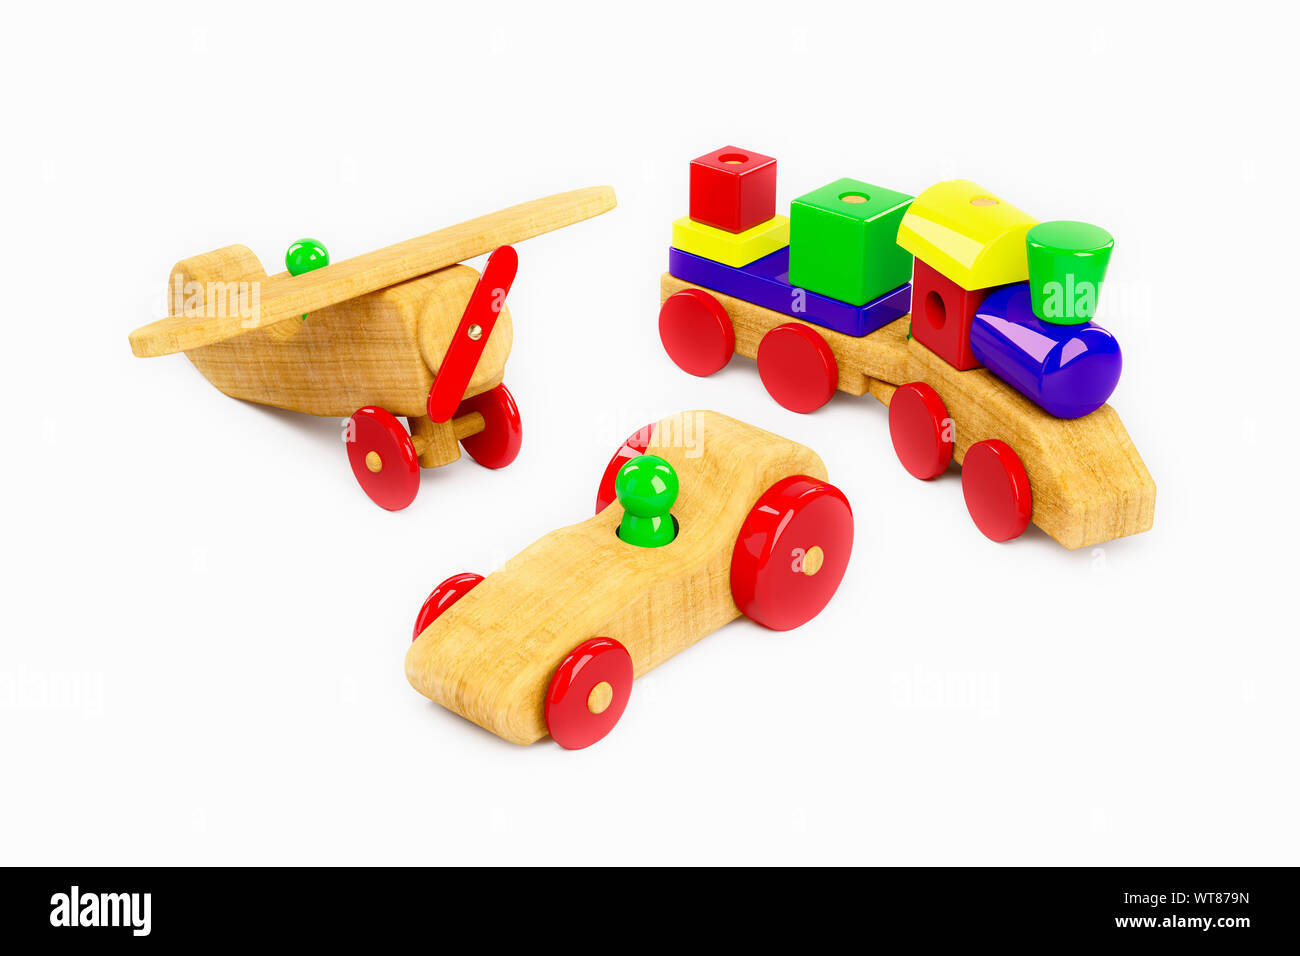 Wooden plane, train and racing car, a selection of childrens wooden toys on a white background Stock Photo